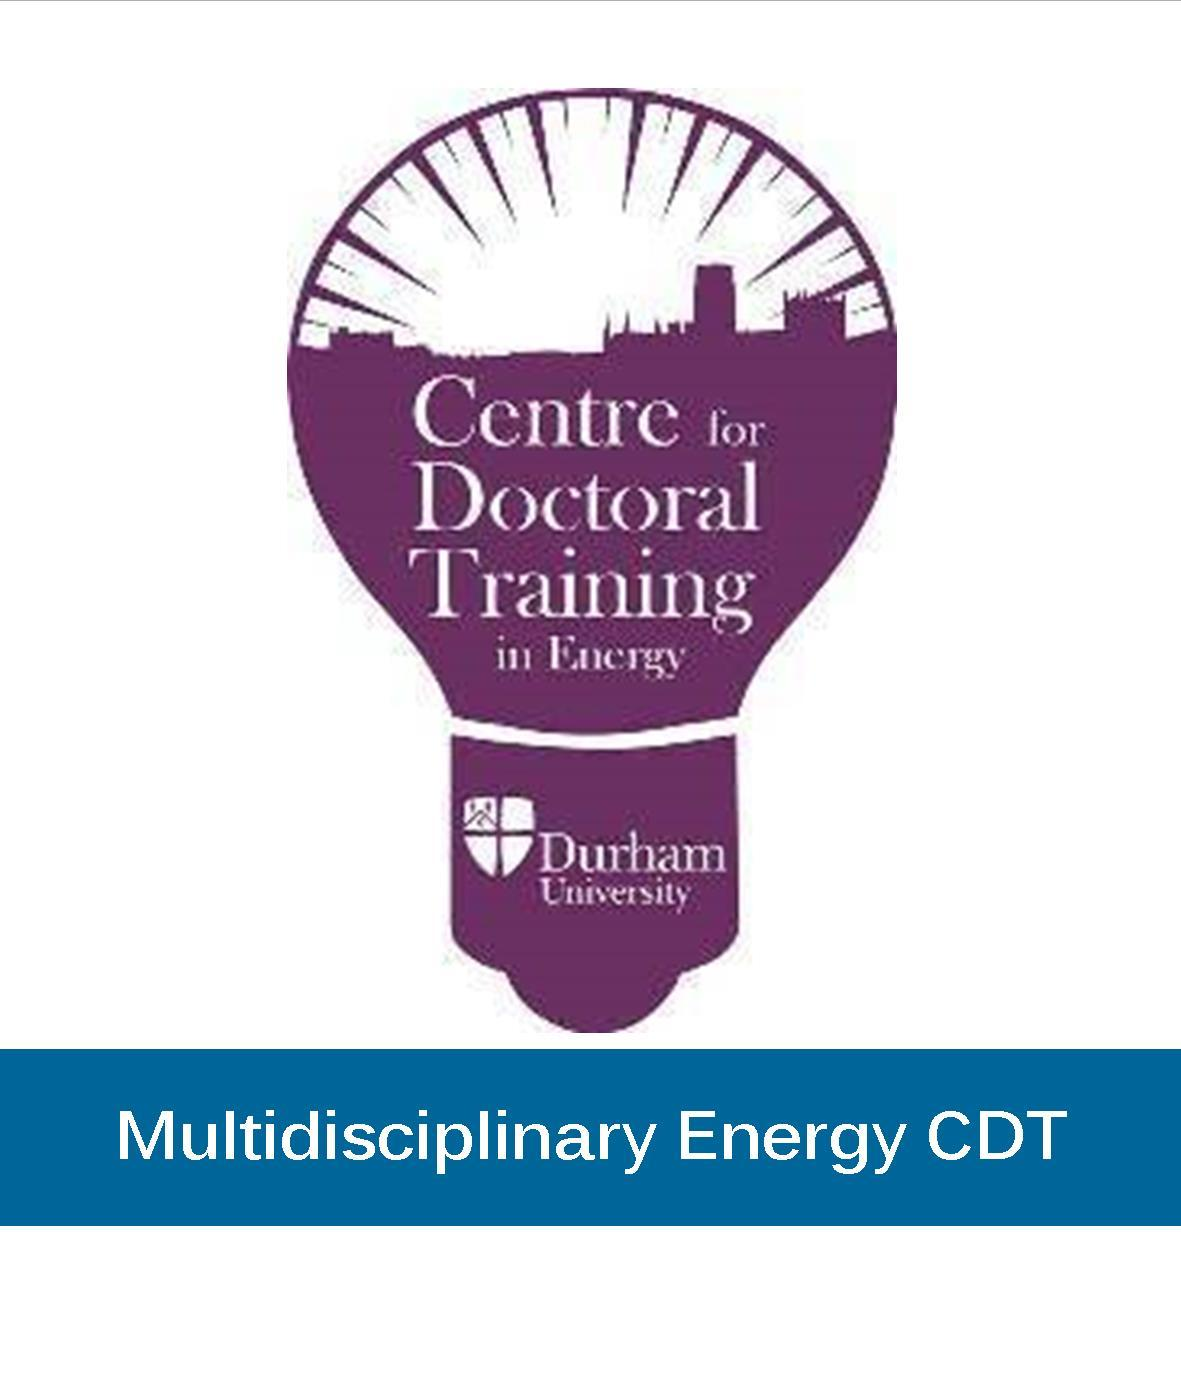 Through the CDT Energy students have the opportunity to undertake world class research within a specialist department at Durham University, but also to gain a broader knowledge of energy issues from engineering to social aspects.